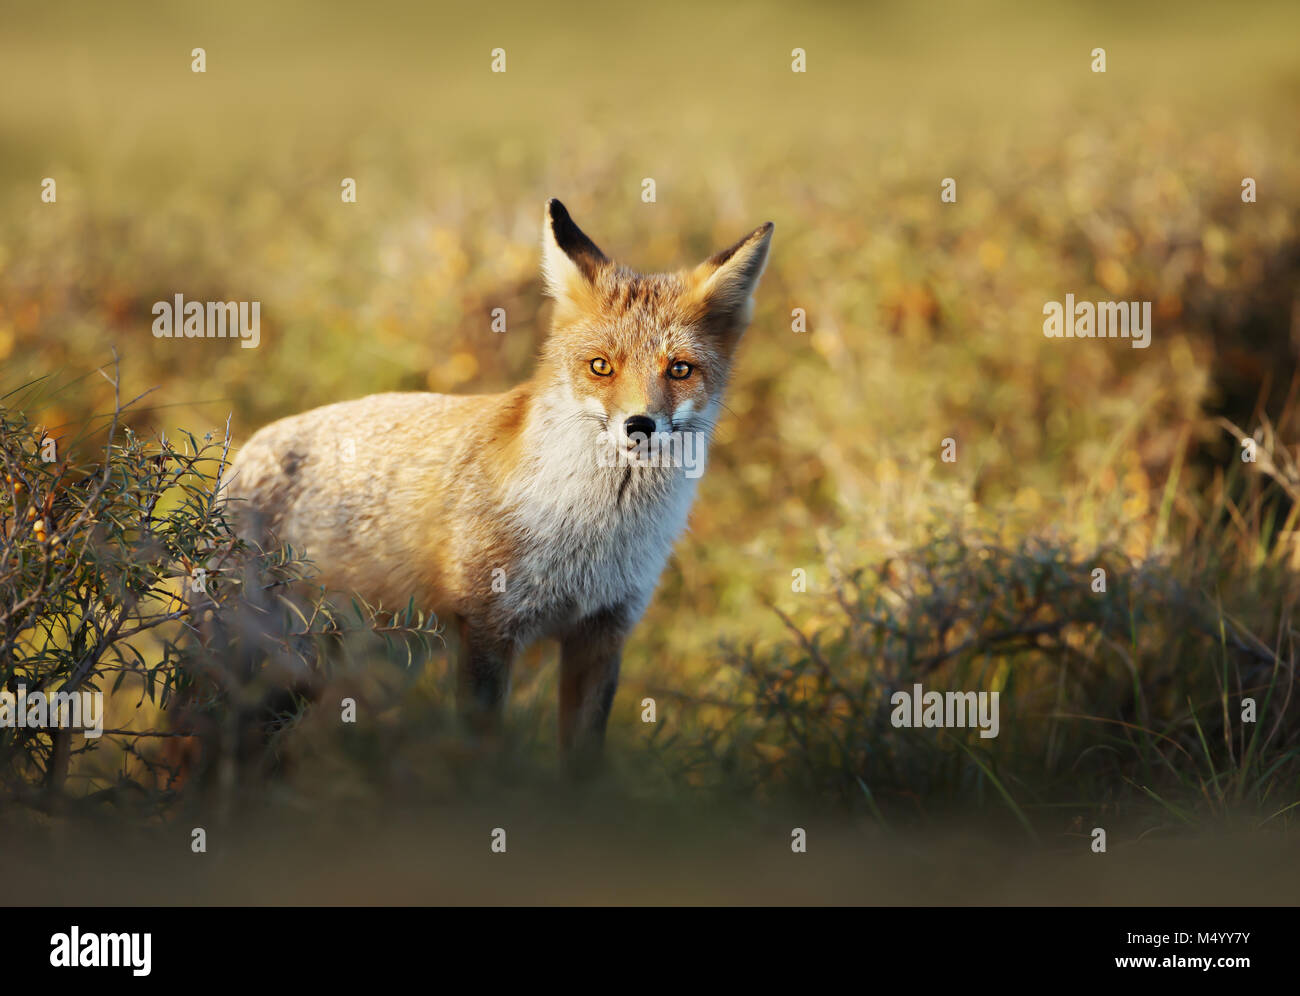 Close up of a young Red fox standing in the field of grass on a sunny evening. - Stock Image